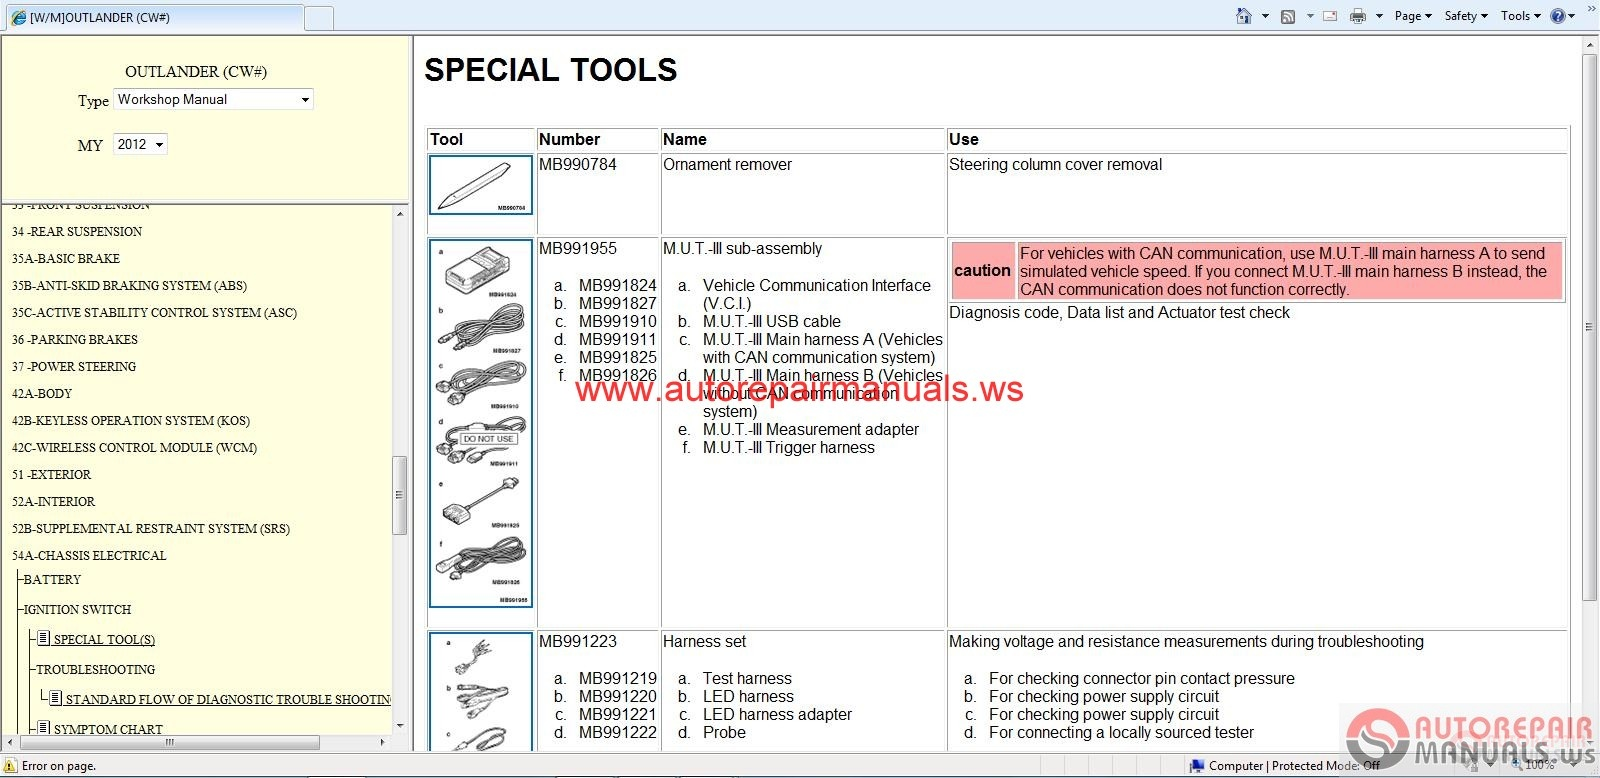 Repair Manual Pdf 2017 Control Panel Wiring Diagram Get Free Image About In Addition Off Grid Solar System On Mitsubishi L200 Diagrams